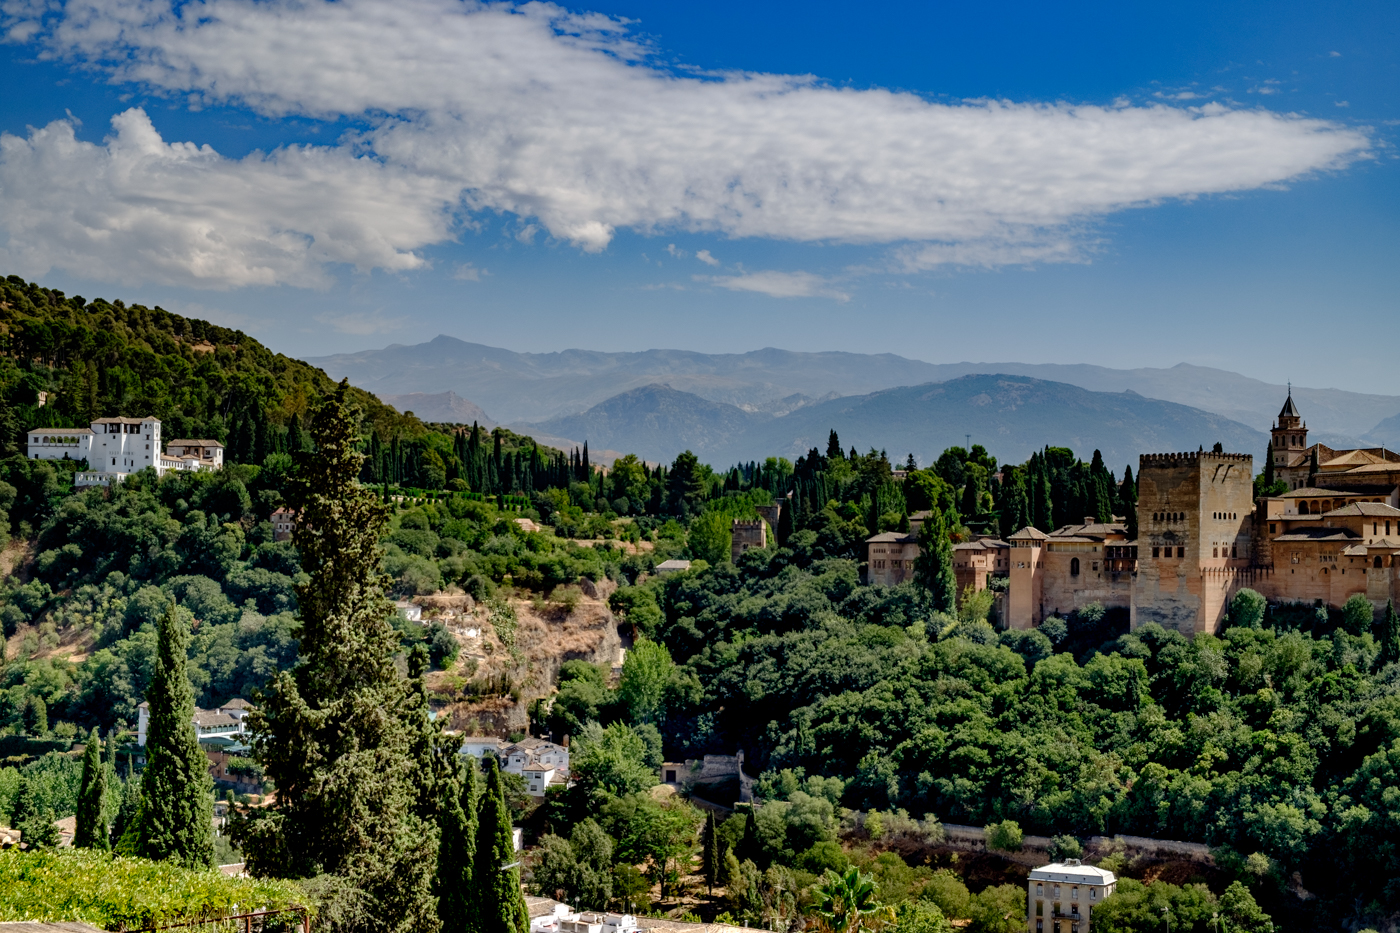 GRANADA SKYLINE by Chris Reynolds